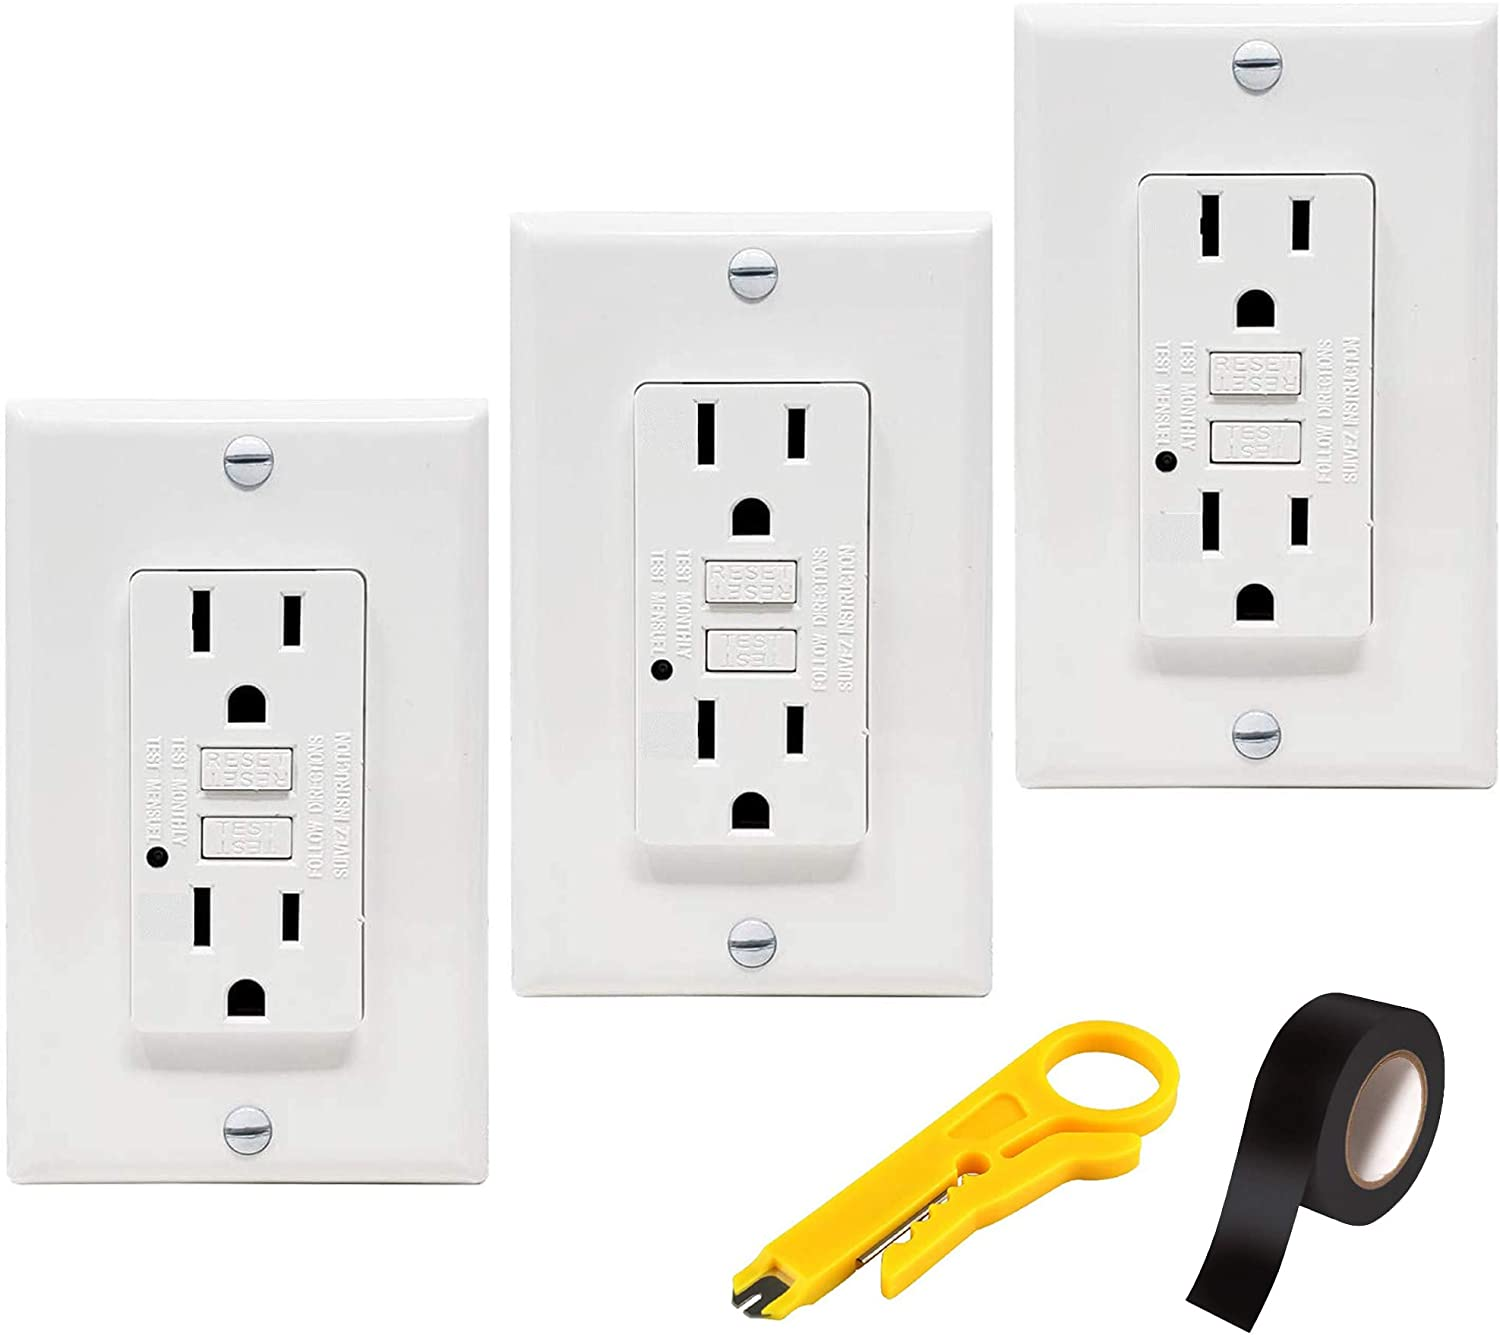 TEKLECTRIC - GFCI Receptacle 15A 125V Tamper Resistant + Wall Plate - GFCI Outlet 15 AMP 125 VOLT Grounded - Wall Plate and Screws Included WHITE (3 Pack)